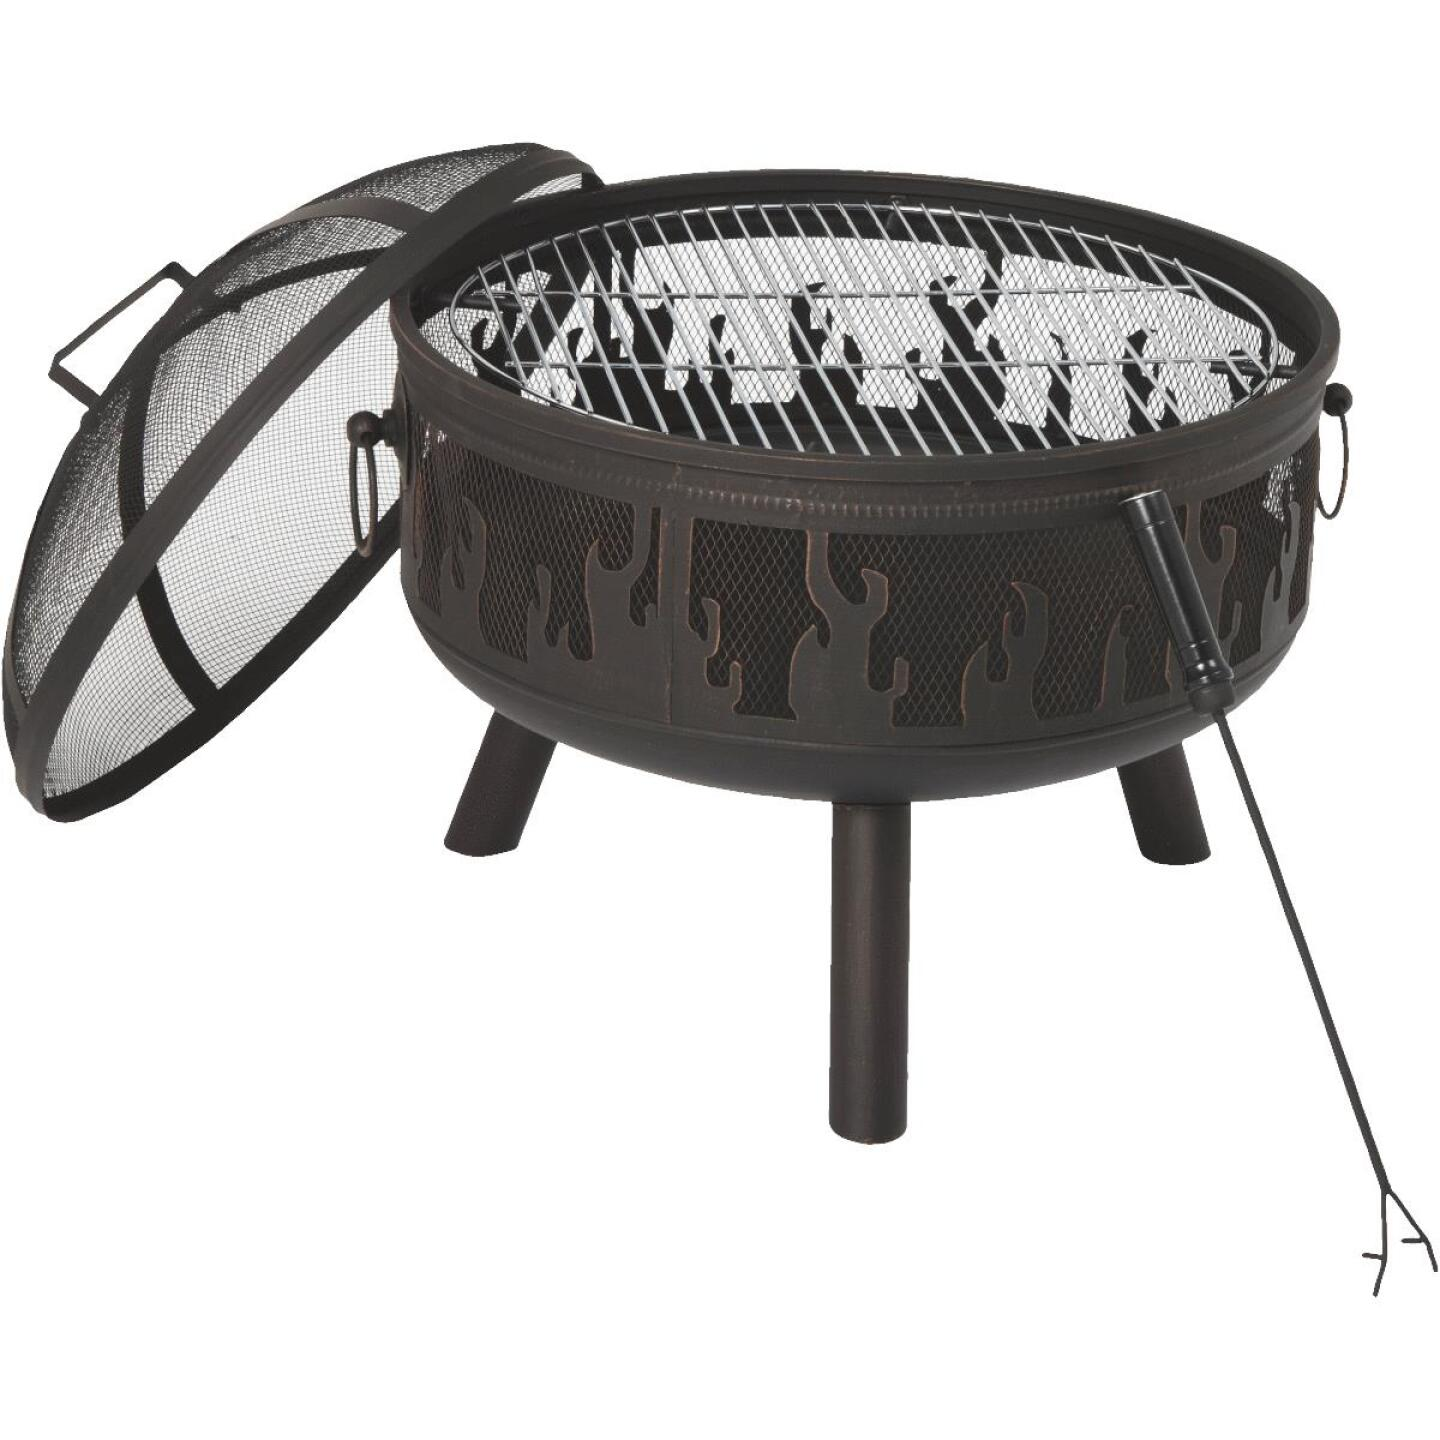 Outdoor Expressions 24 In. Antique Bronze Round Steel Fire Pit Image 2